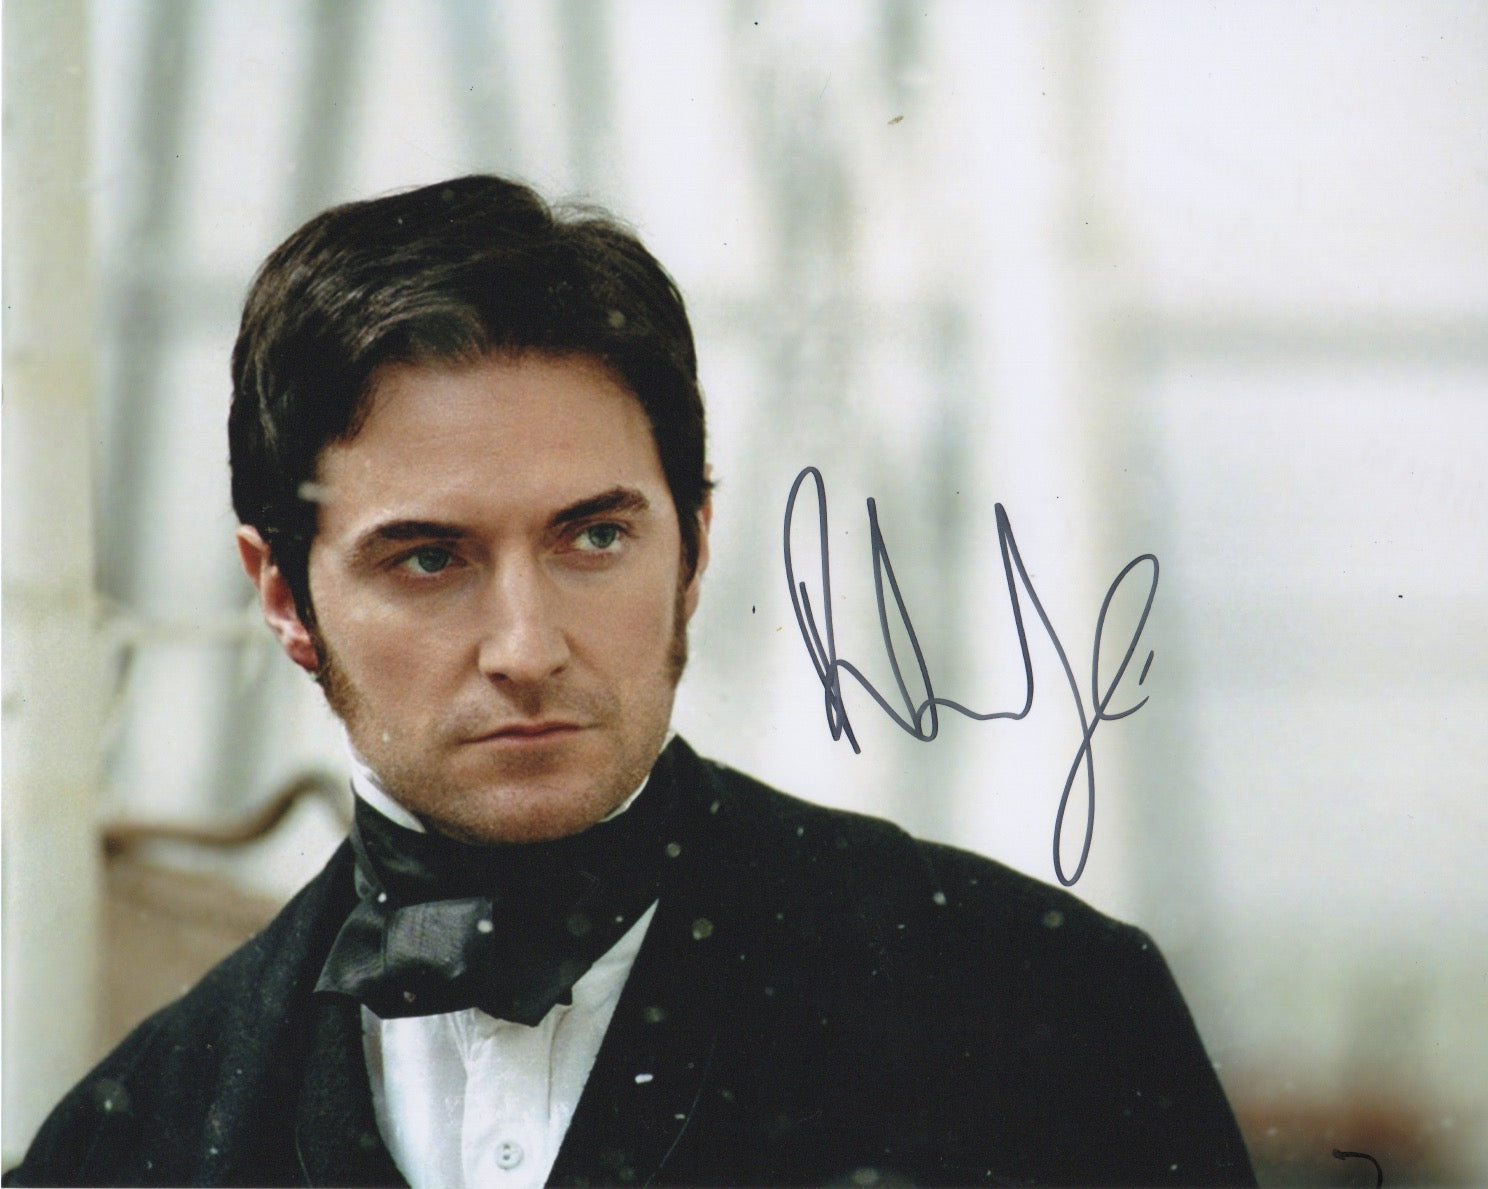 Richard Armitage Signed Autograph 8x10 North Northwest BBC Photo #7